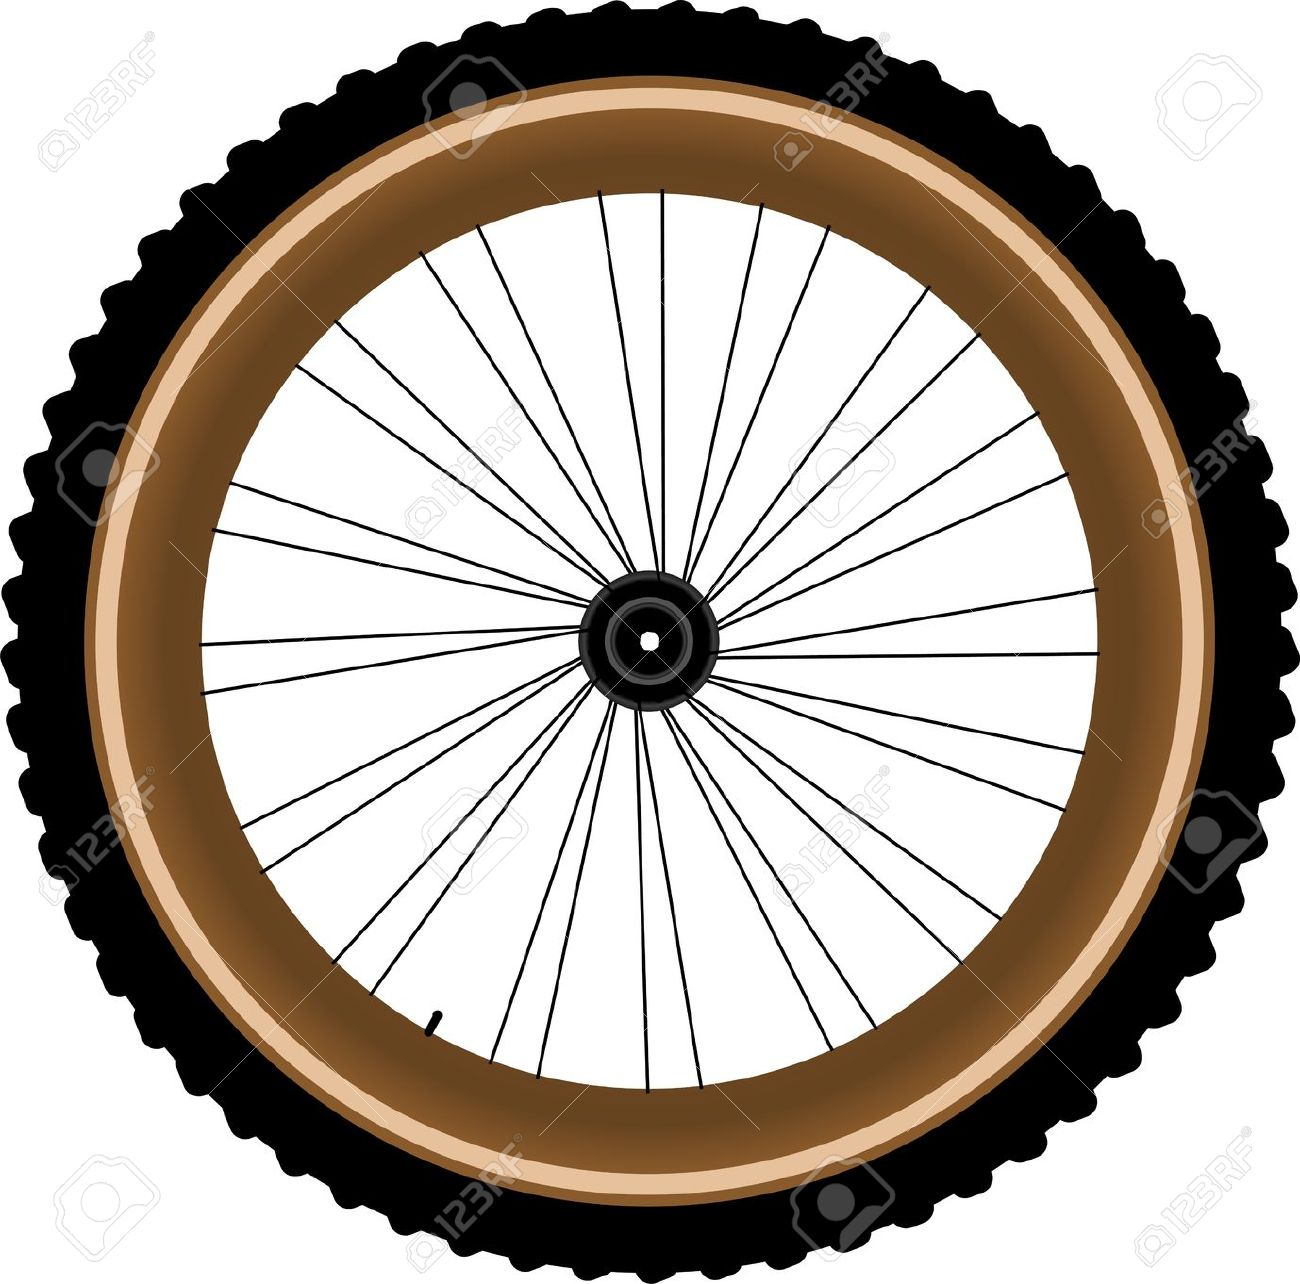 Wheel And Axle Clip Art.